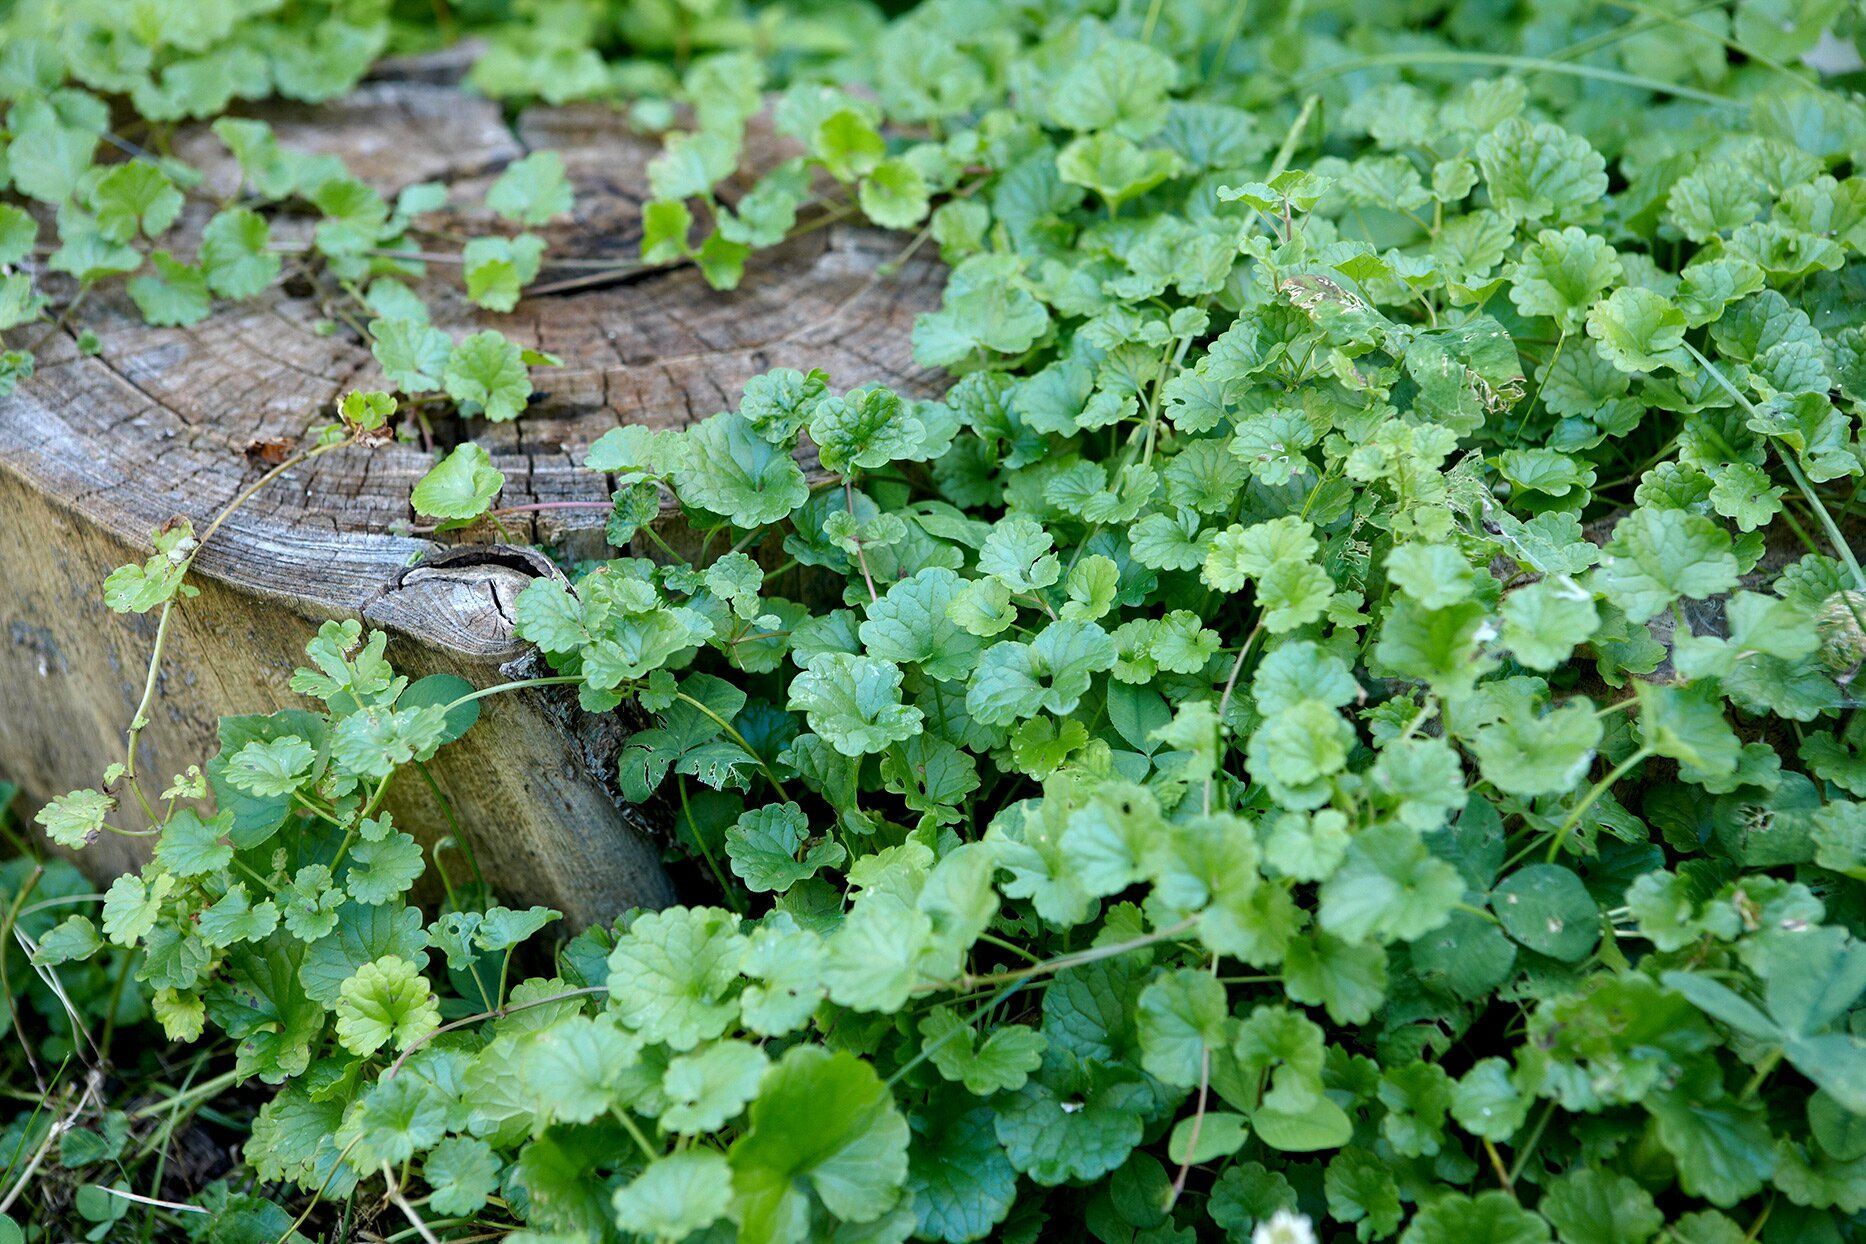 How To Get Rid Of Creeping Charlie And Keep It From Coming Back In 2020 Weeds In Lawn Mosquito Repelling Plants Garden Solutions